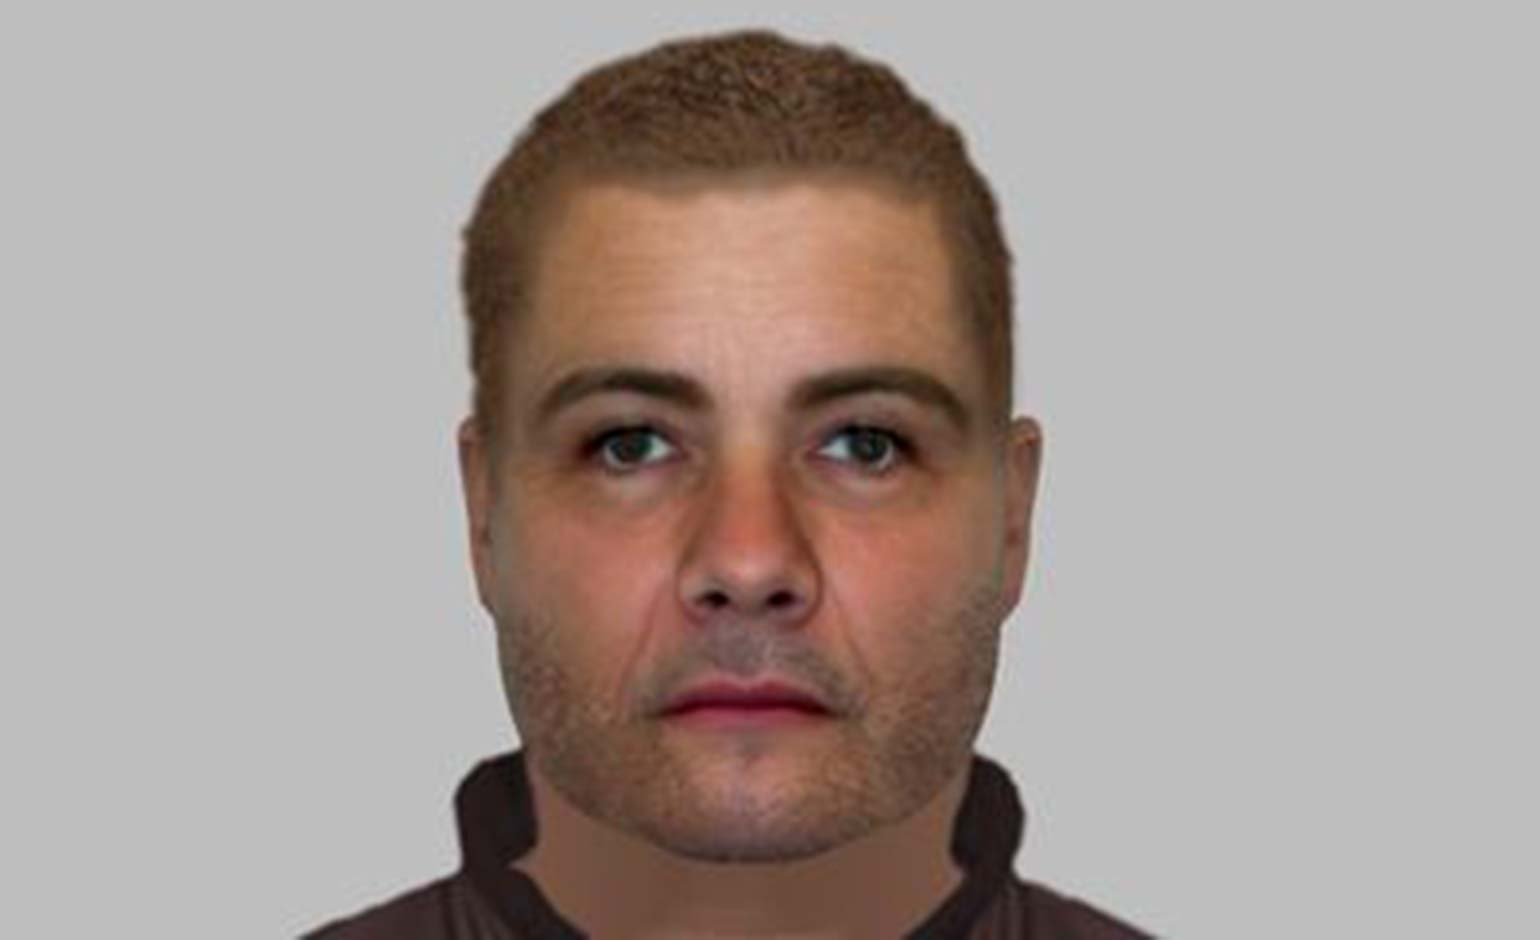 E-fit released by police after man attacked with wooden bat in Twerton